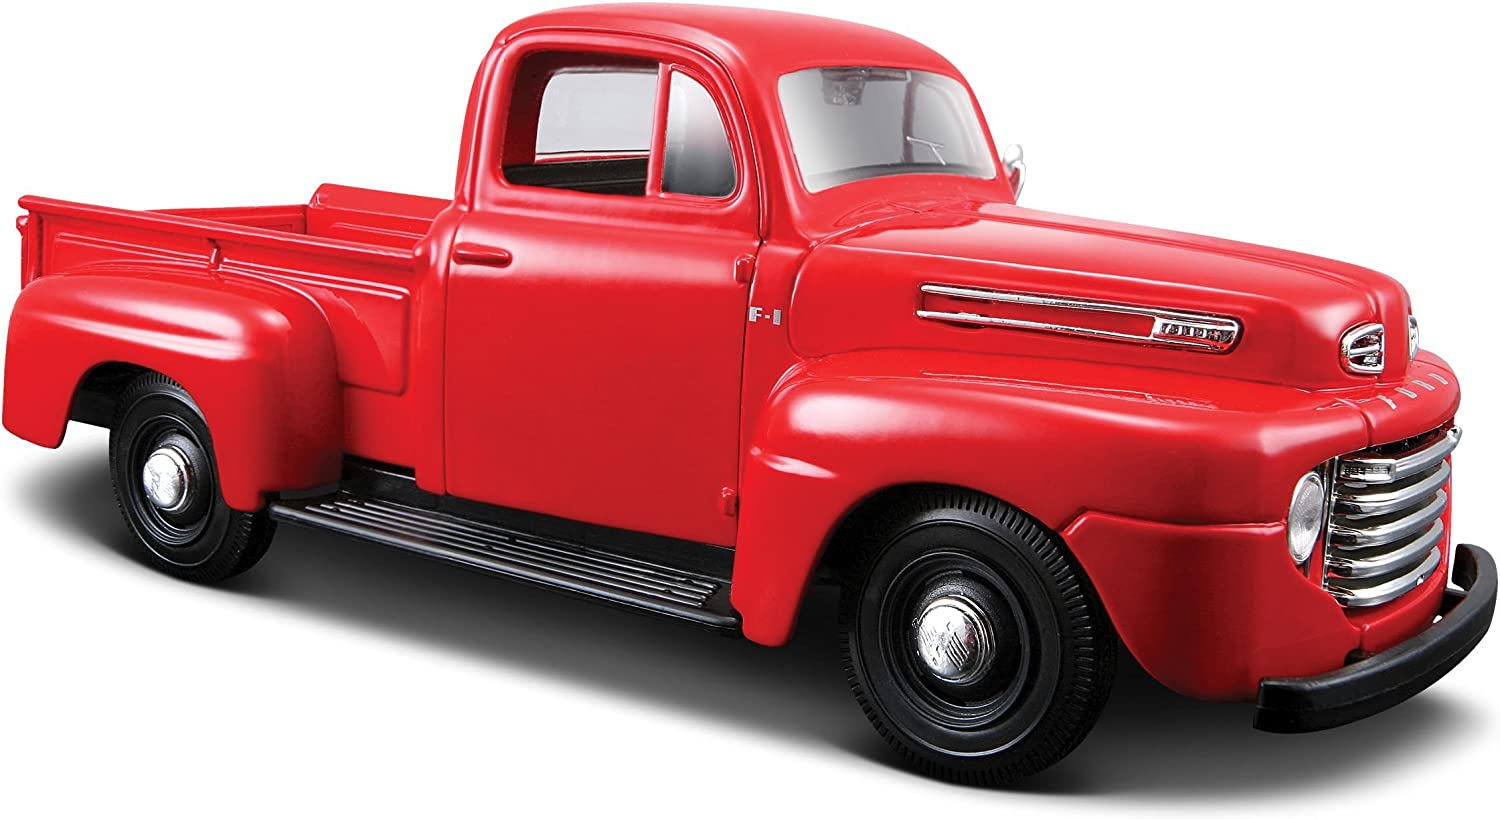 Maisto 1 25 Scale 1948 Ford Pickup Diecast Truck colors May Vary